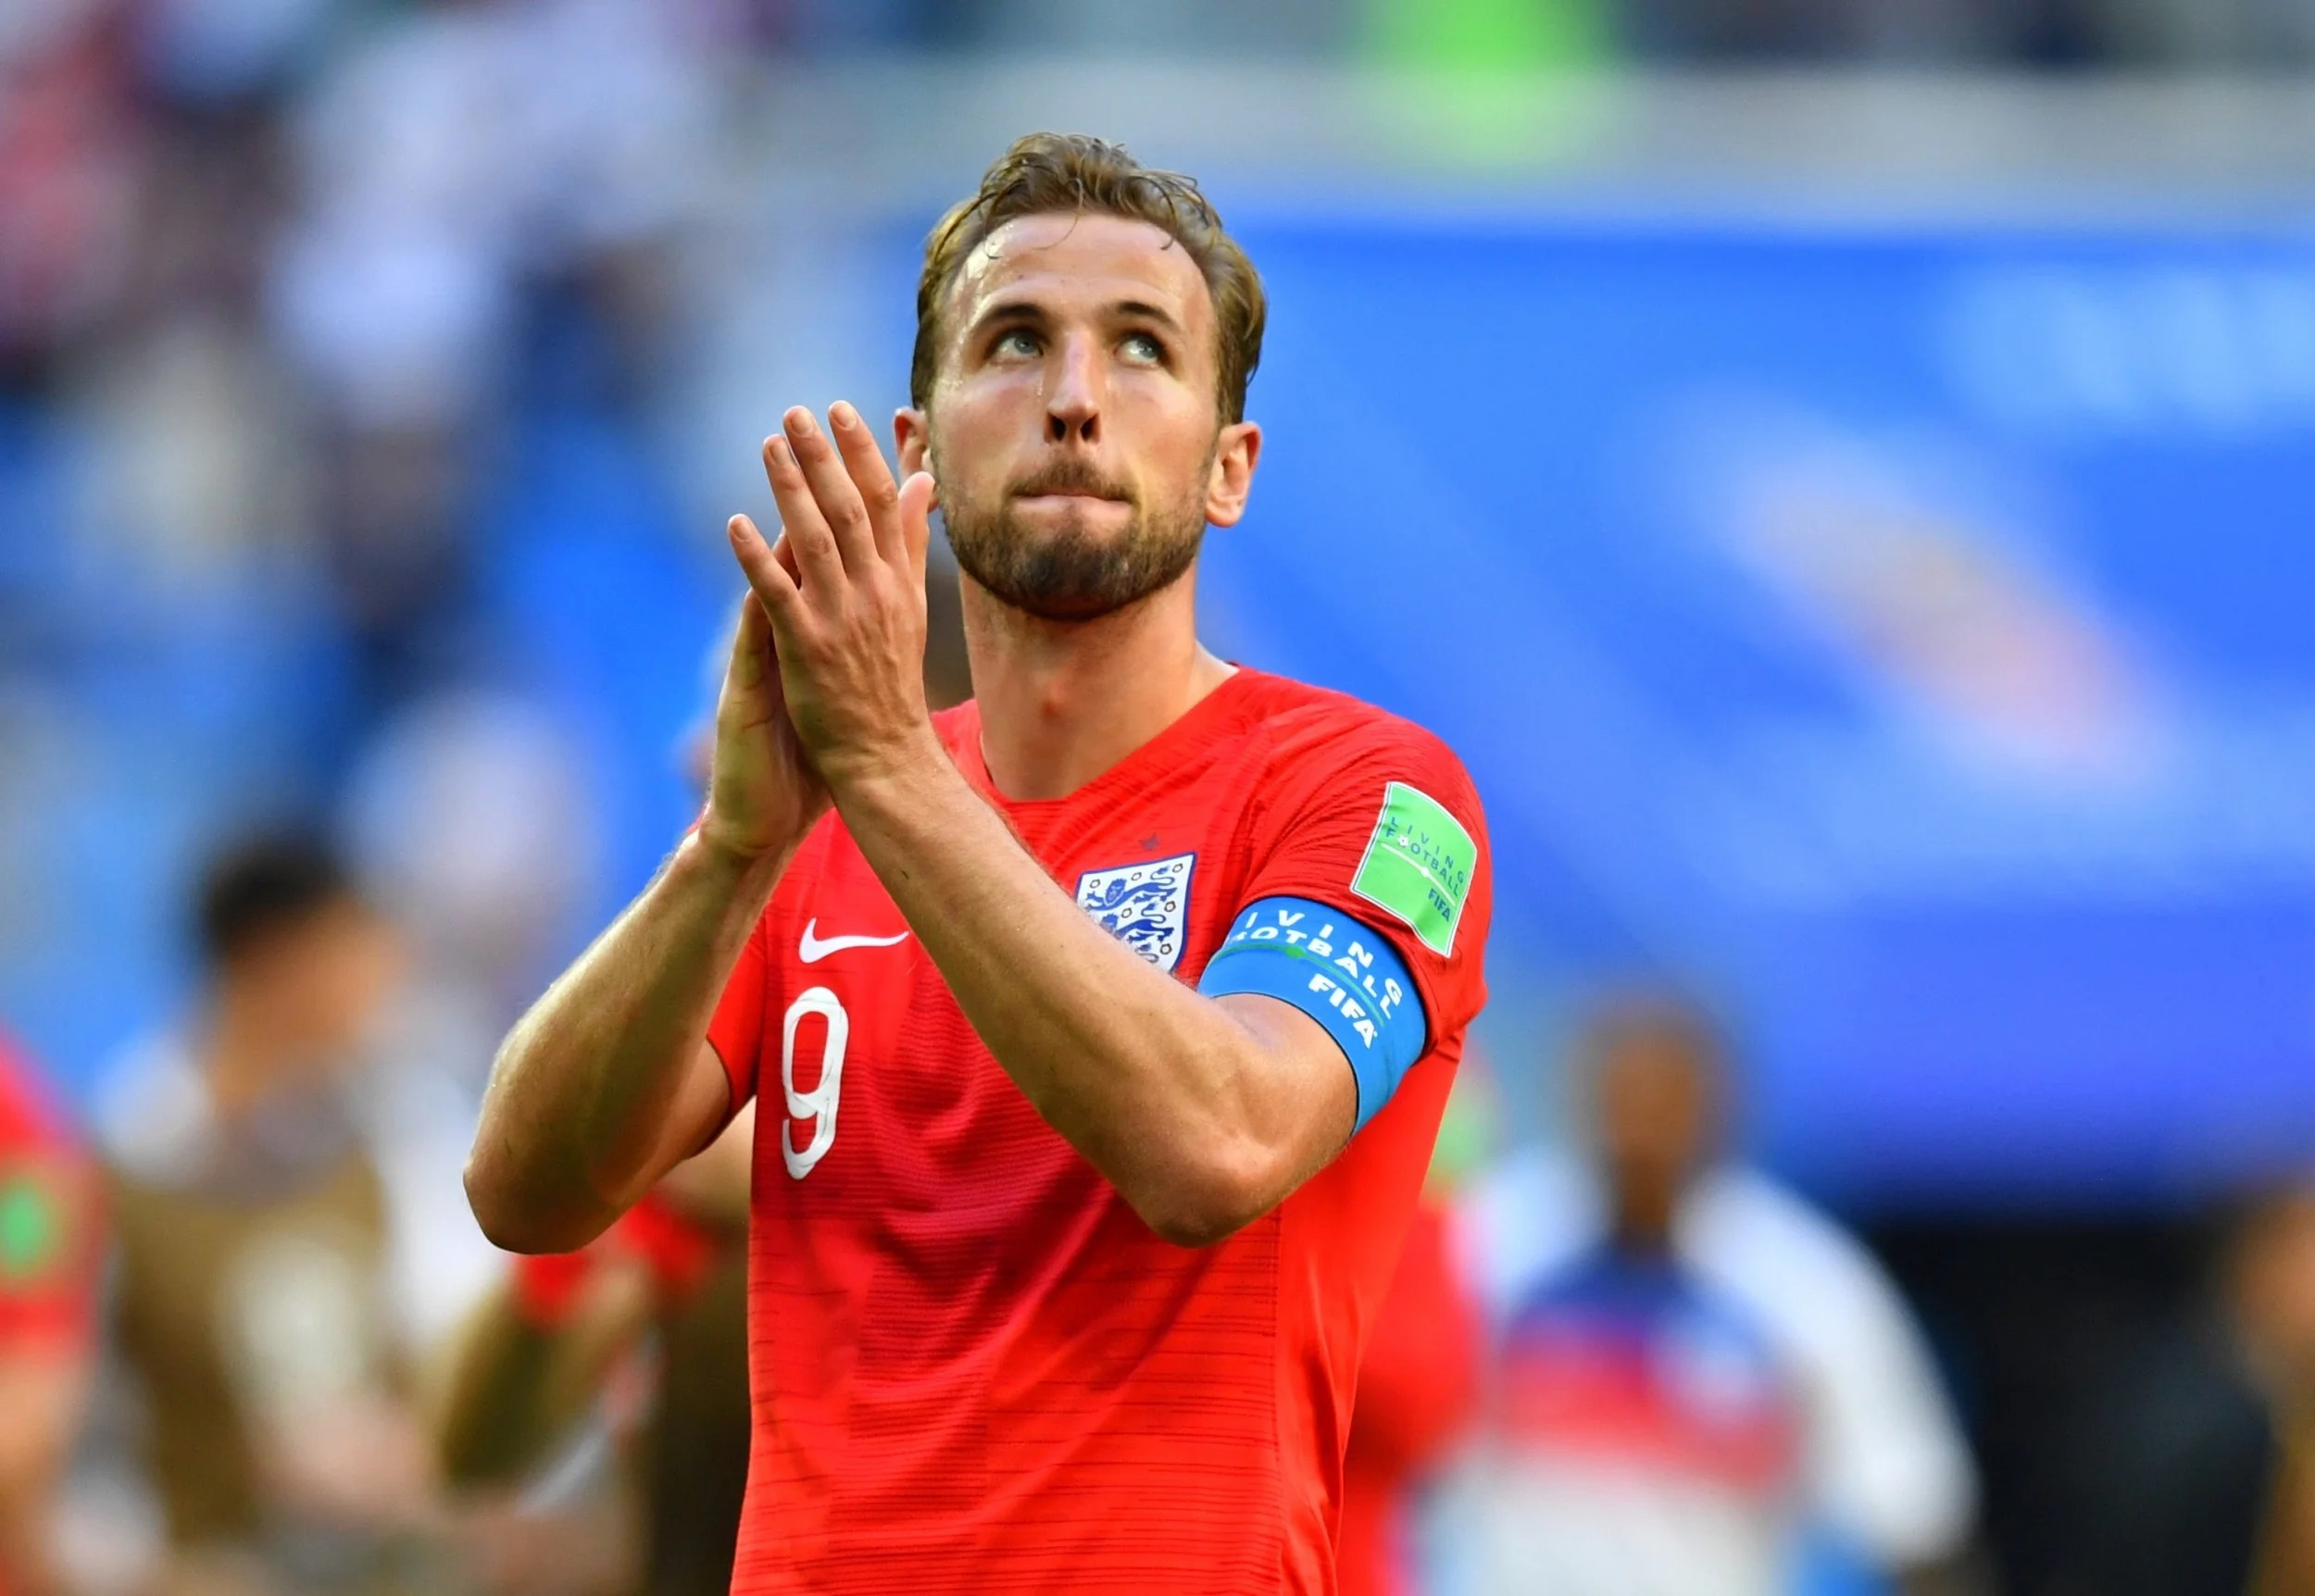 World Cup 2018  Harry Kane s name booed as he is announced as Golden     World Cup 2018  Harry Kane s name booed as he is announced as Golden Boot  winner after final   The Independent